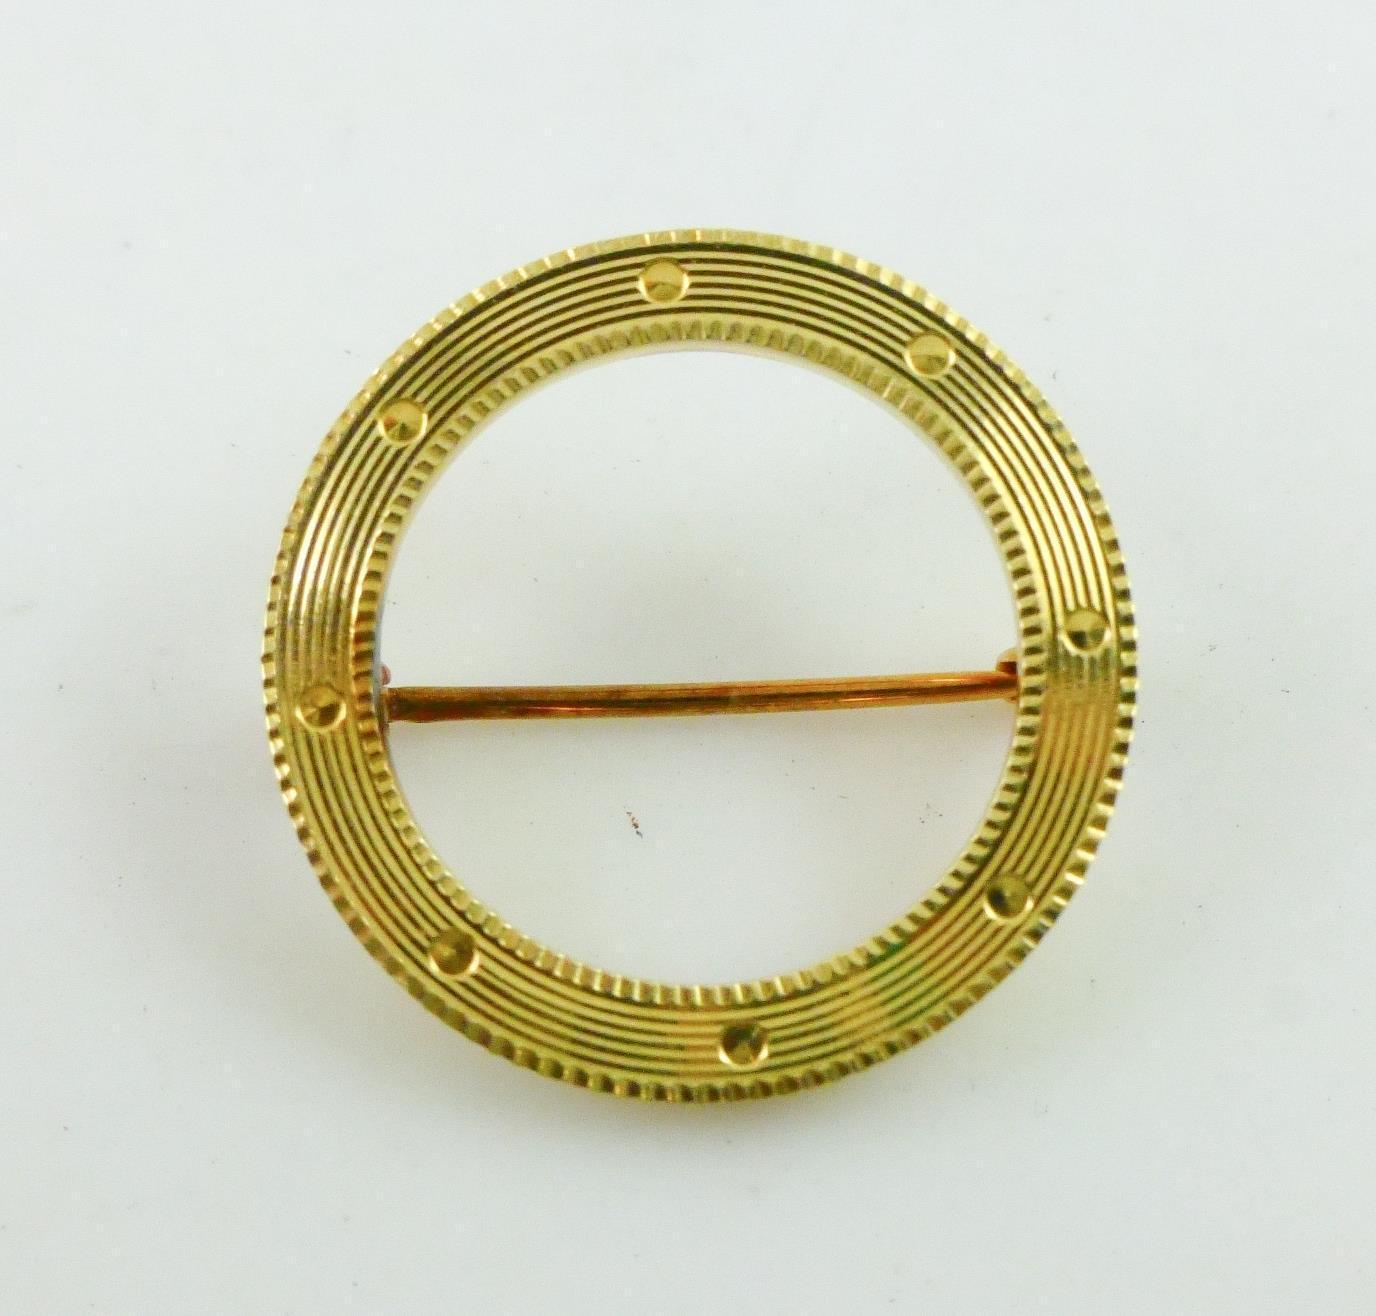 14K Yellow GOLD Textured Open CIRCLE Pin - 1.5 grams - FREE SHIPPING